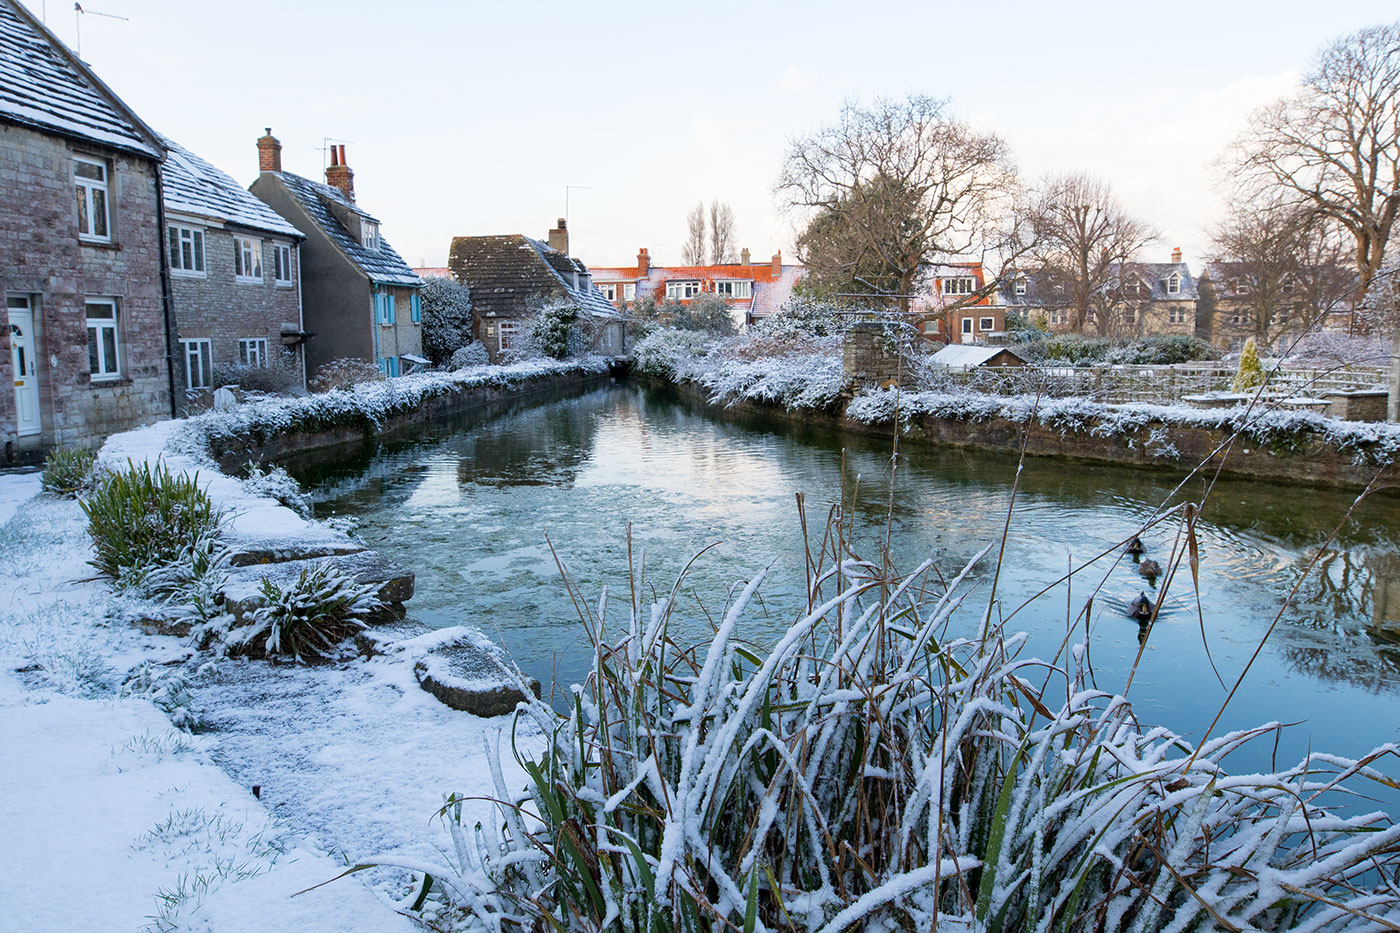 Mill Pond and Snow in the winter